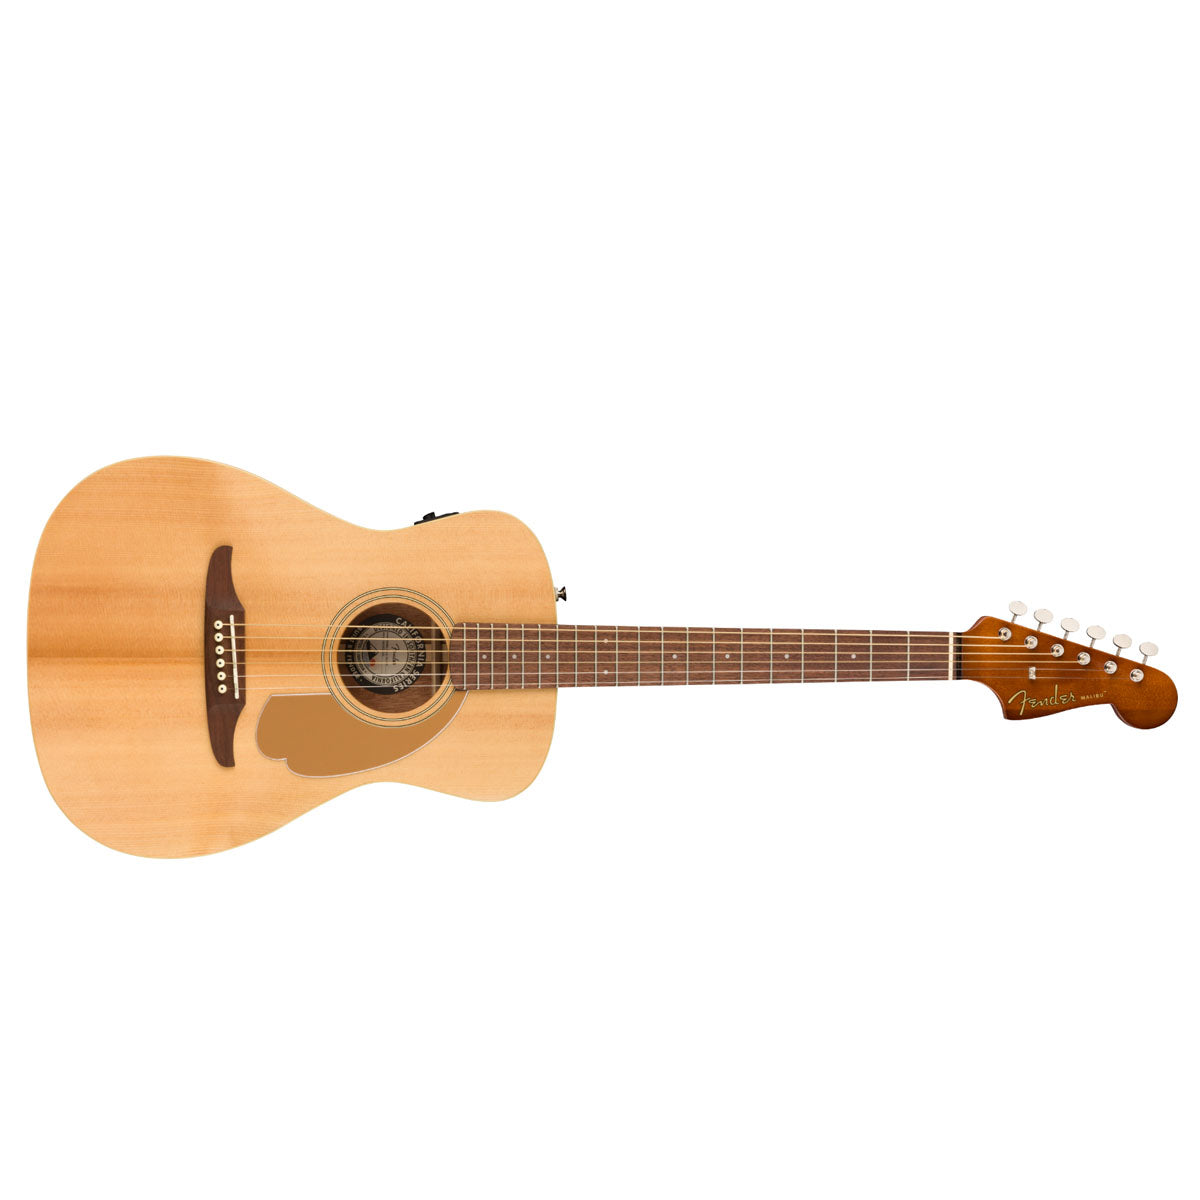 Fender California Malibu Player Acoustic Guitar Natural - 0970722021